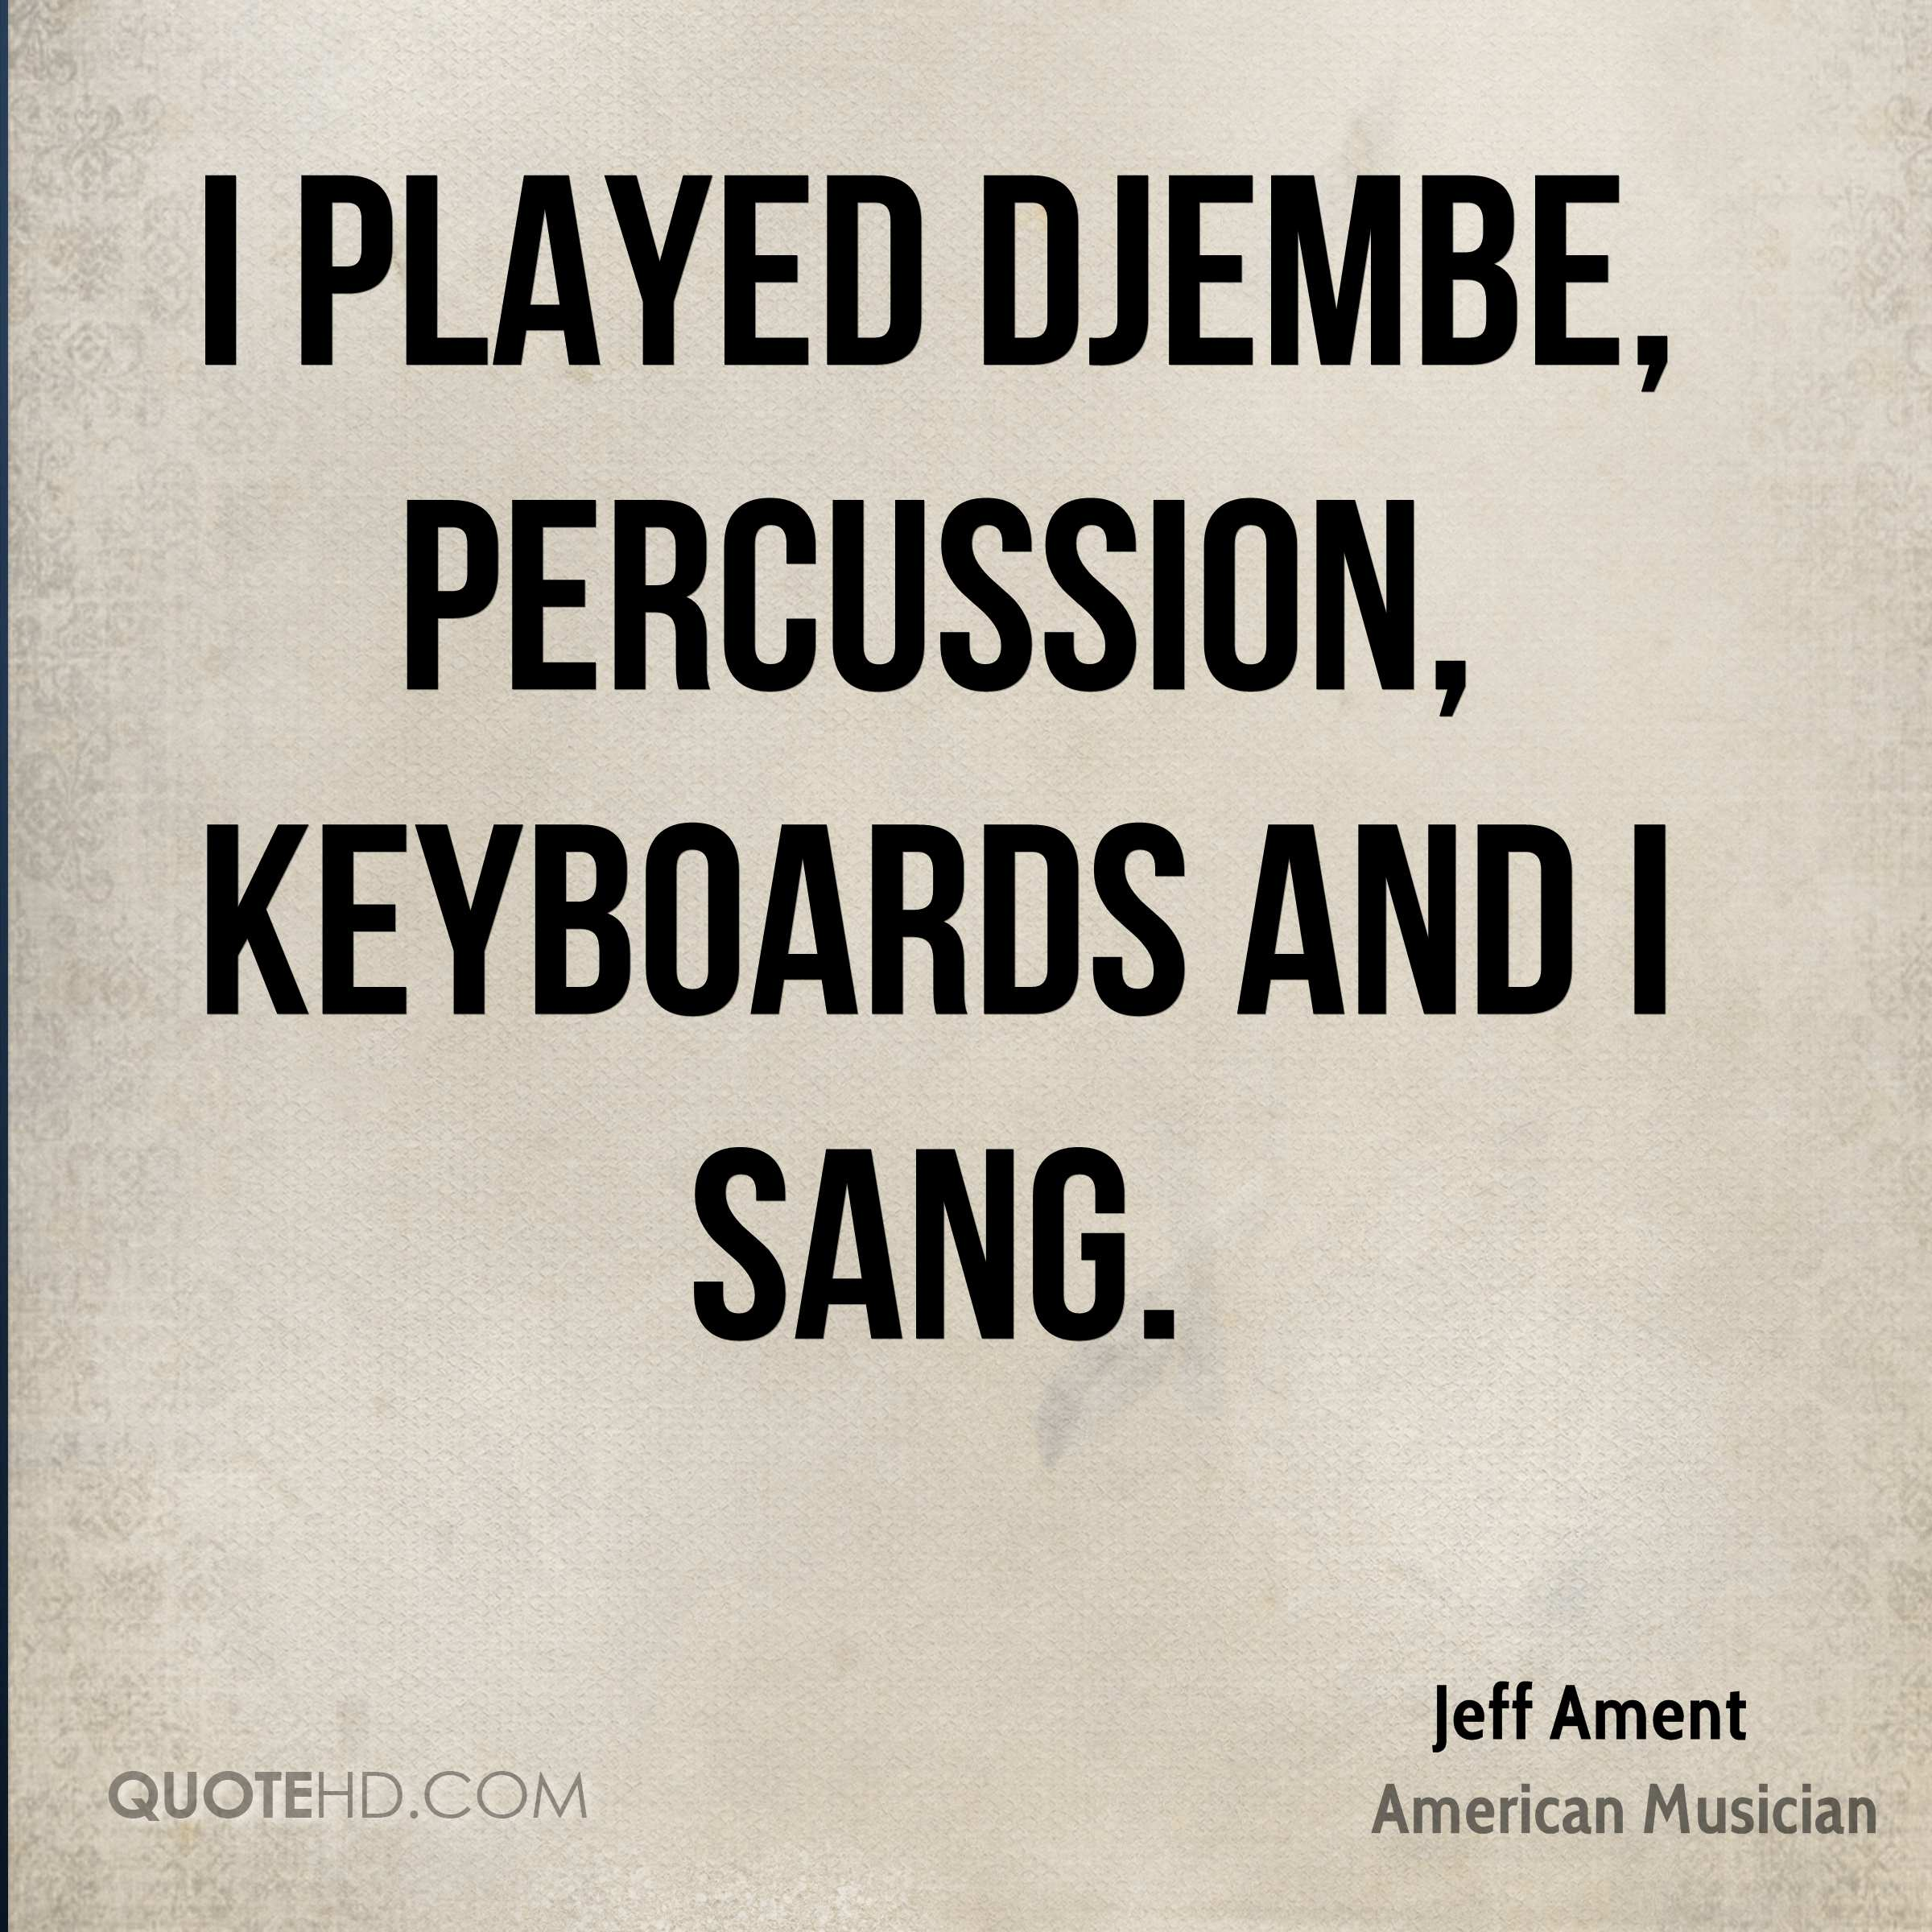 I played djembe, percussion, keyboards and I sang.